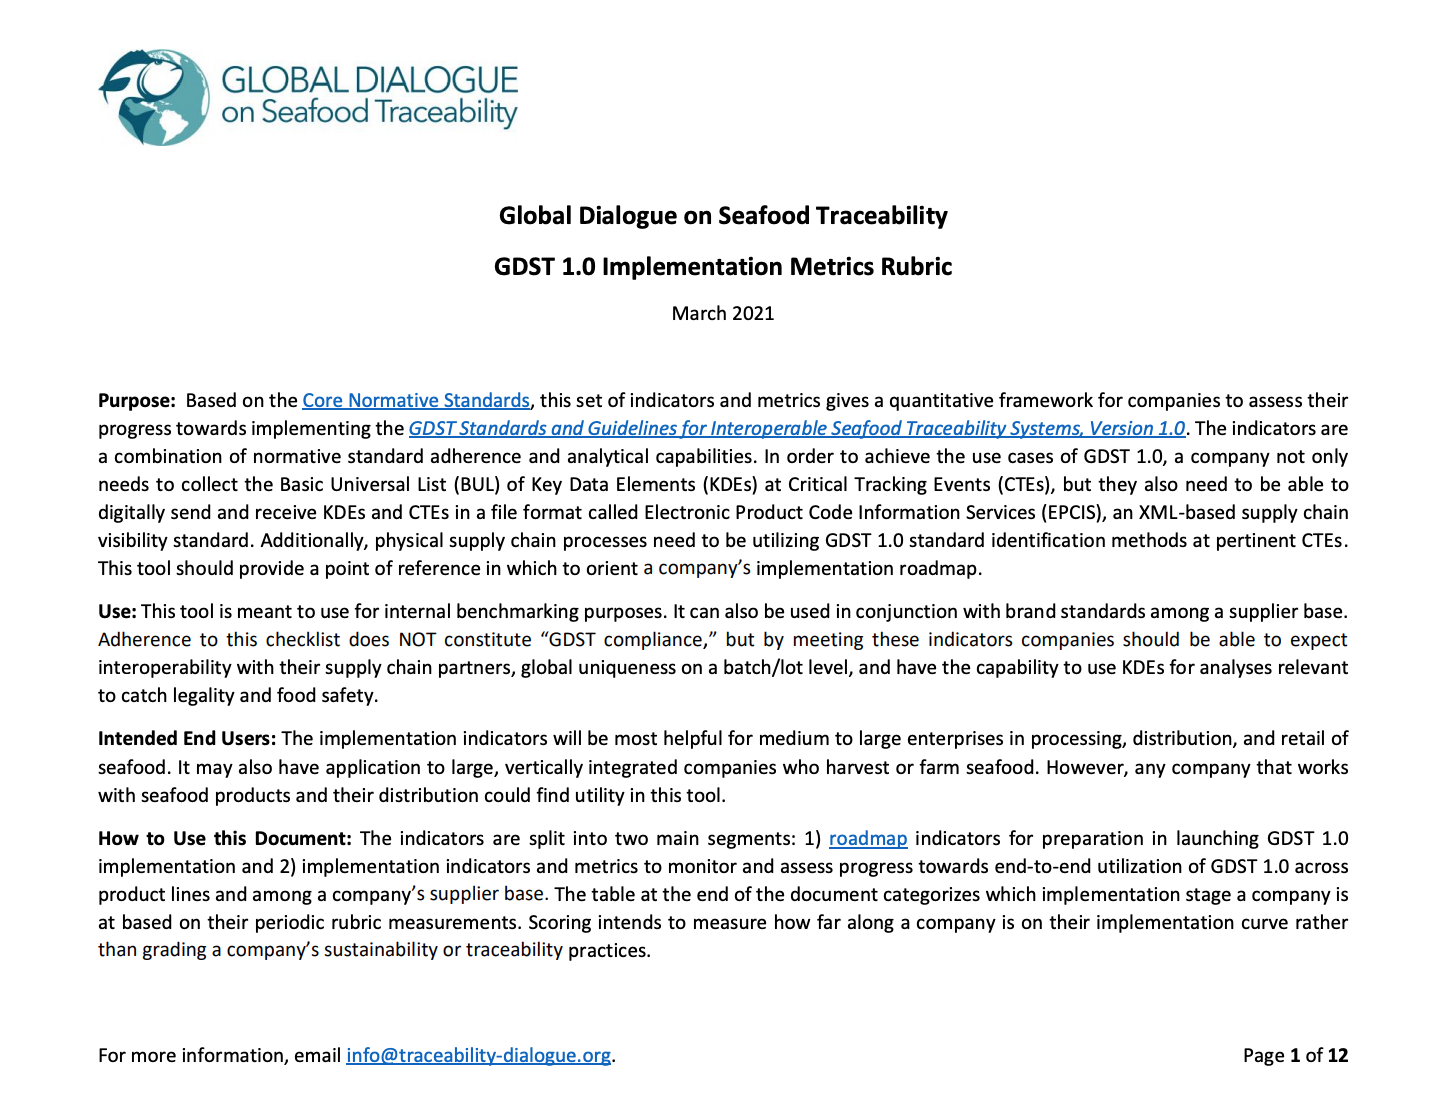 Global Dialogue on Seafood Traceability 1.0 Implementation Metrics Rubric